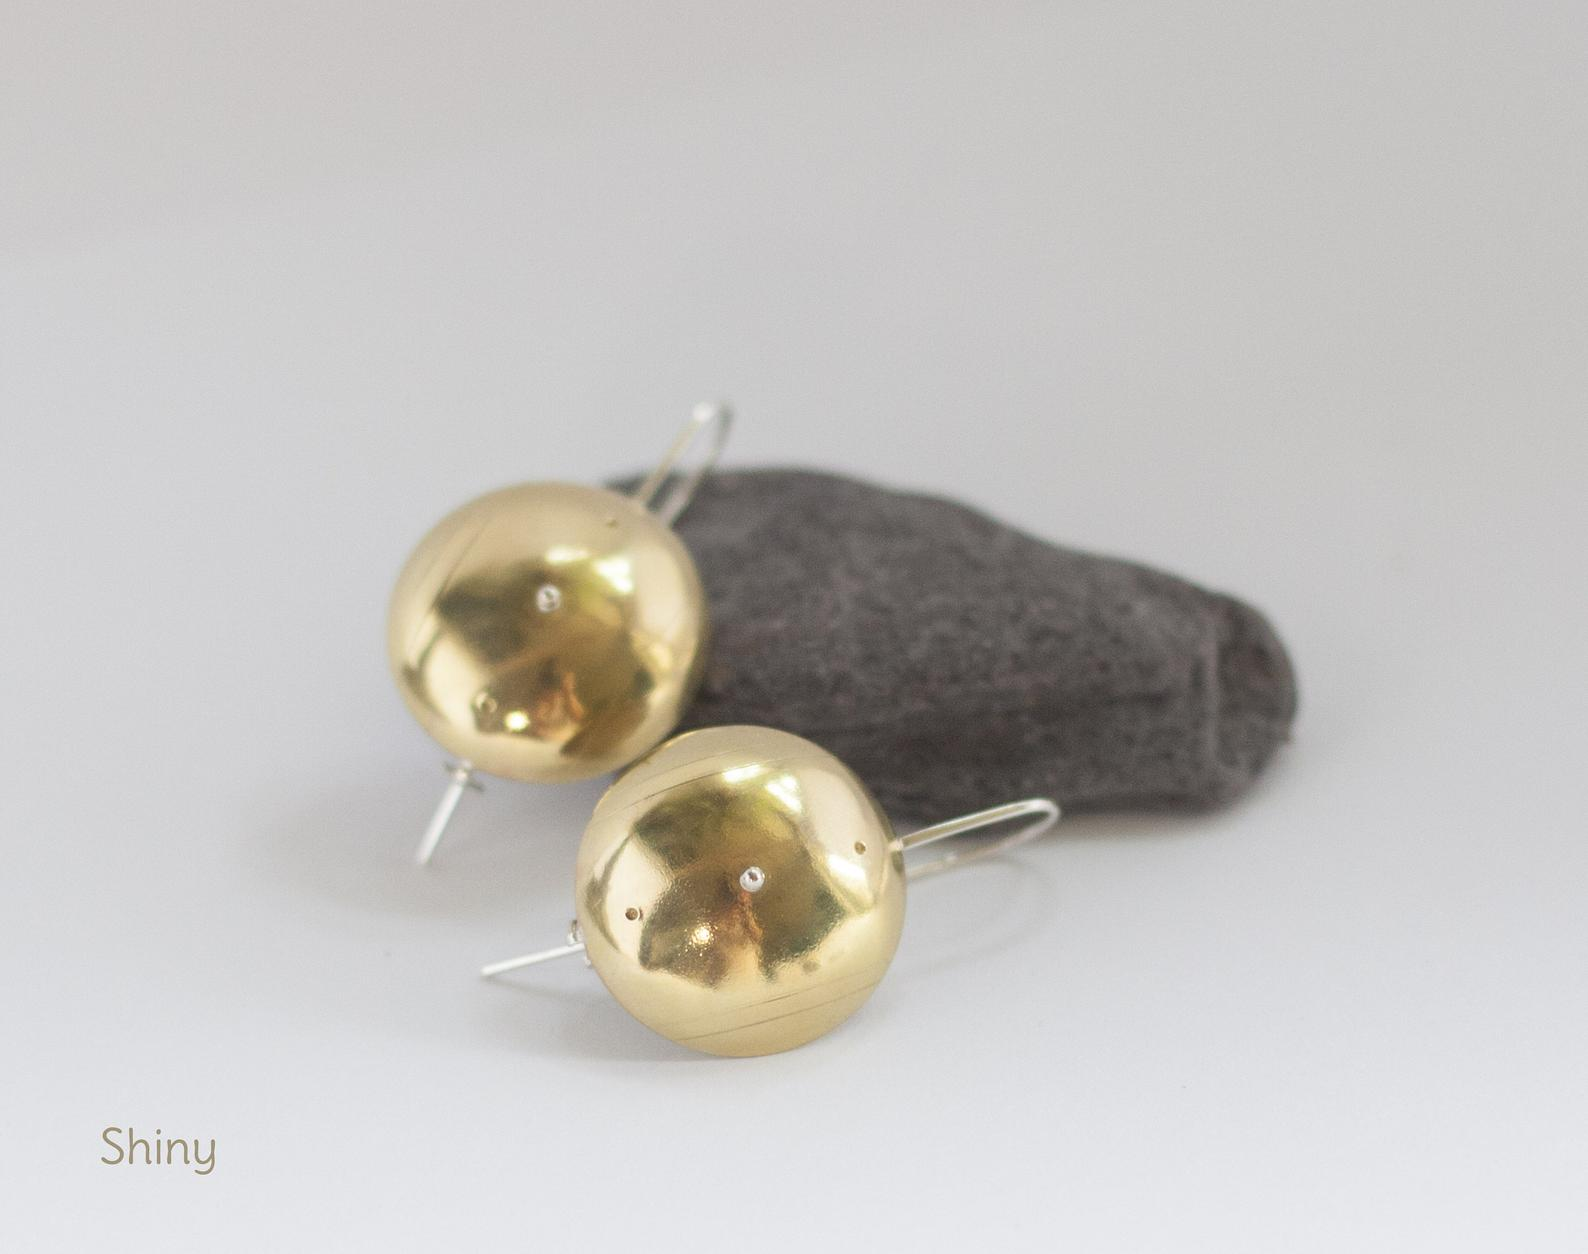 Shield earrings in brass with silver details and fine engravings